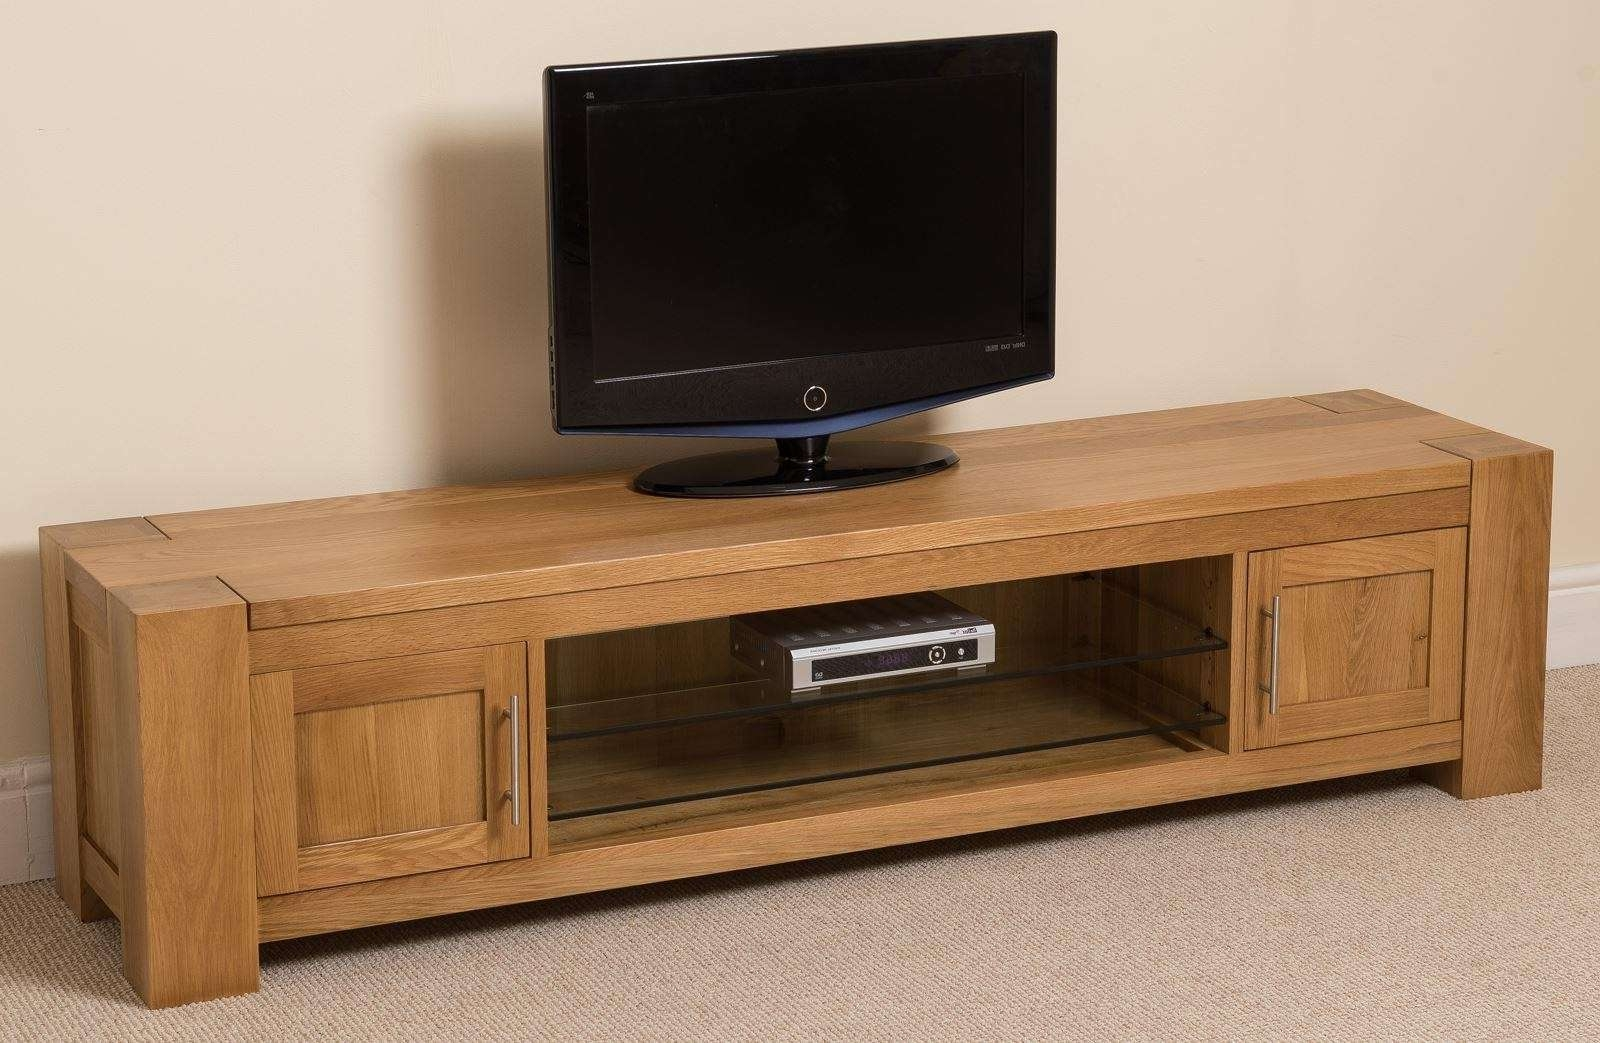 Kuba Solid Widescreen Tv Cabinet | Oak Furniture King For Wide Screen Tv Stands (View 7 of 15)